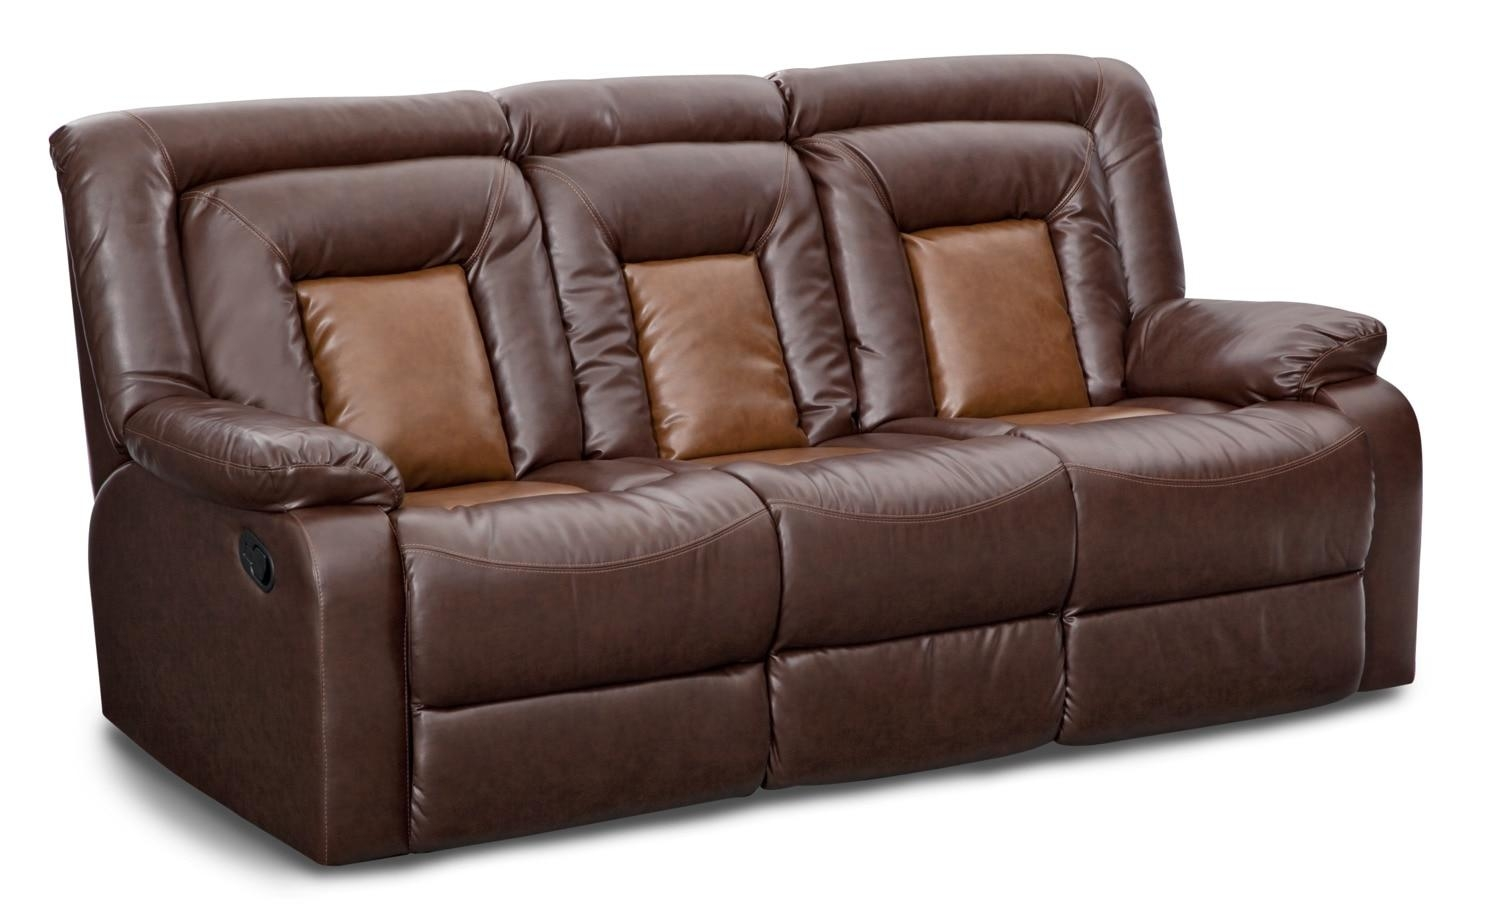 Furniture: Couch Covers For Reclining Sofa | Dual Reclining Sofa Within Recliner Sofa Slipcovers (Image 3 of 20)